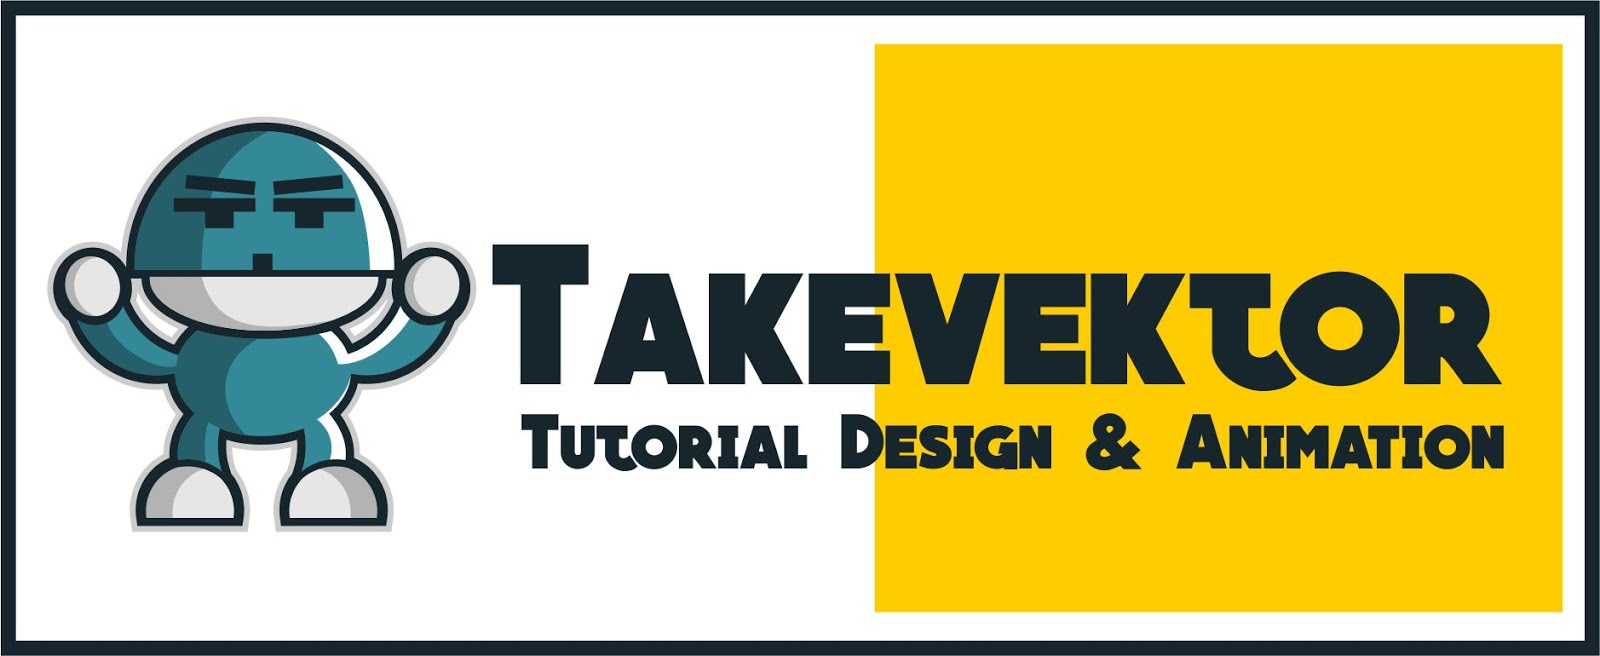 TakeVektor | Tutorial Design &  Animation